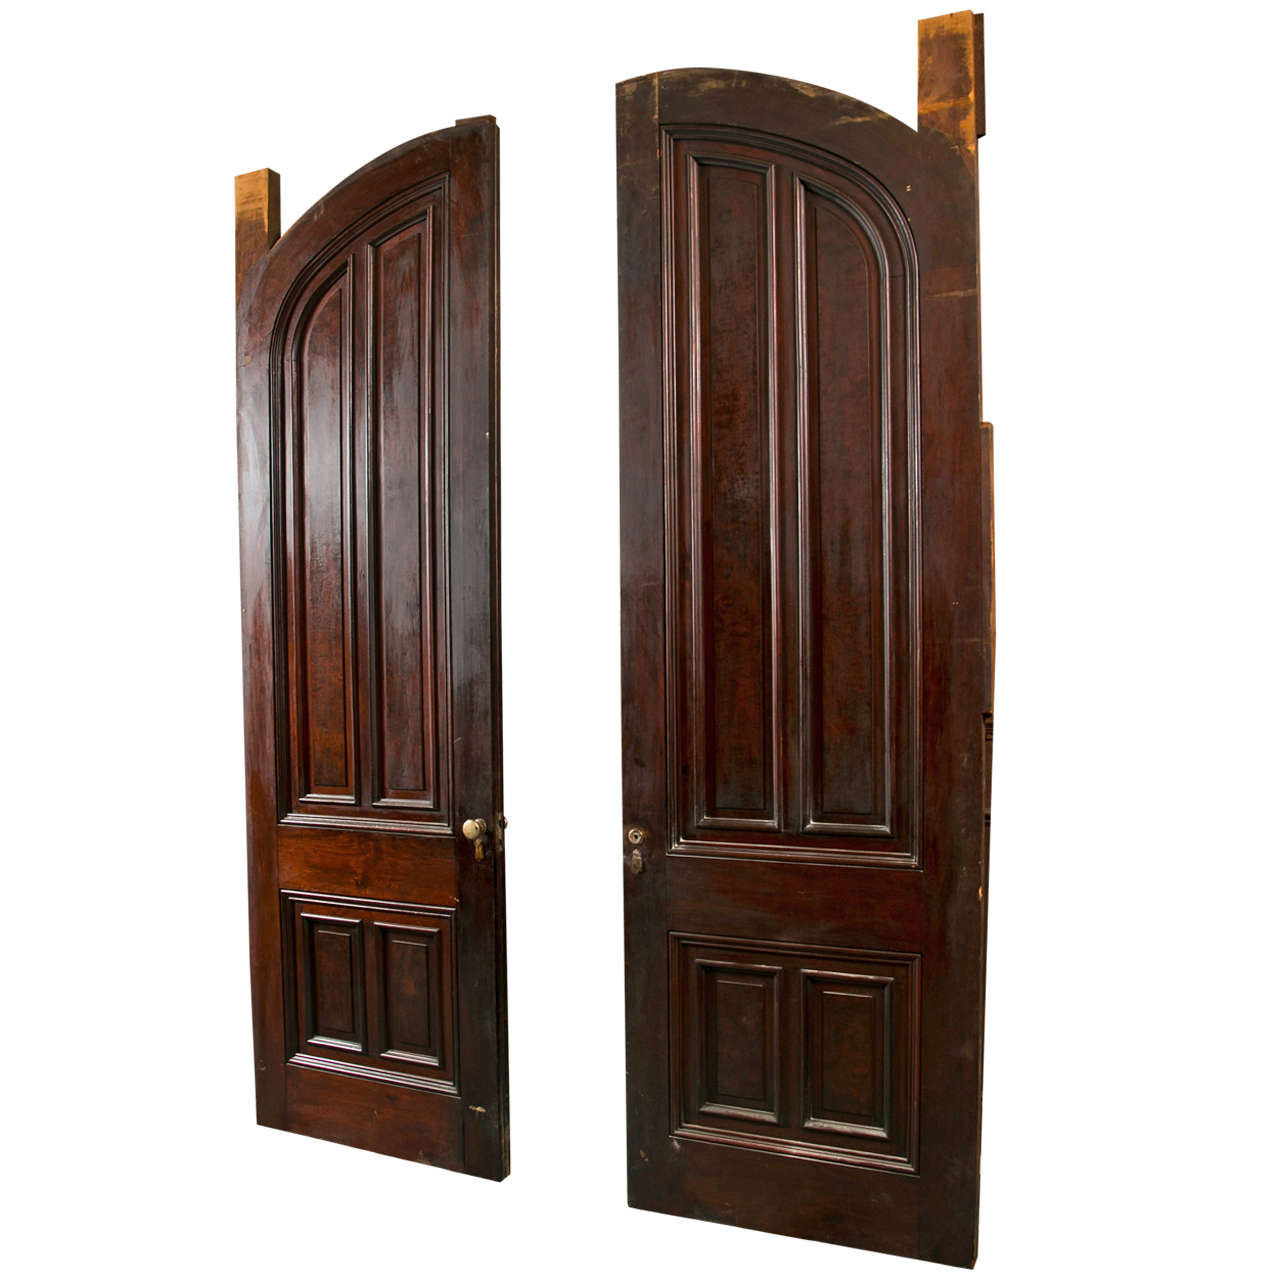 Antique walnut raised panel pocket doors at 1stdibs for Gatehouse furniture